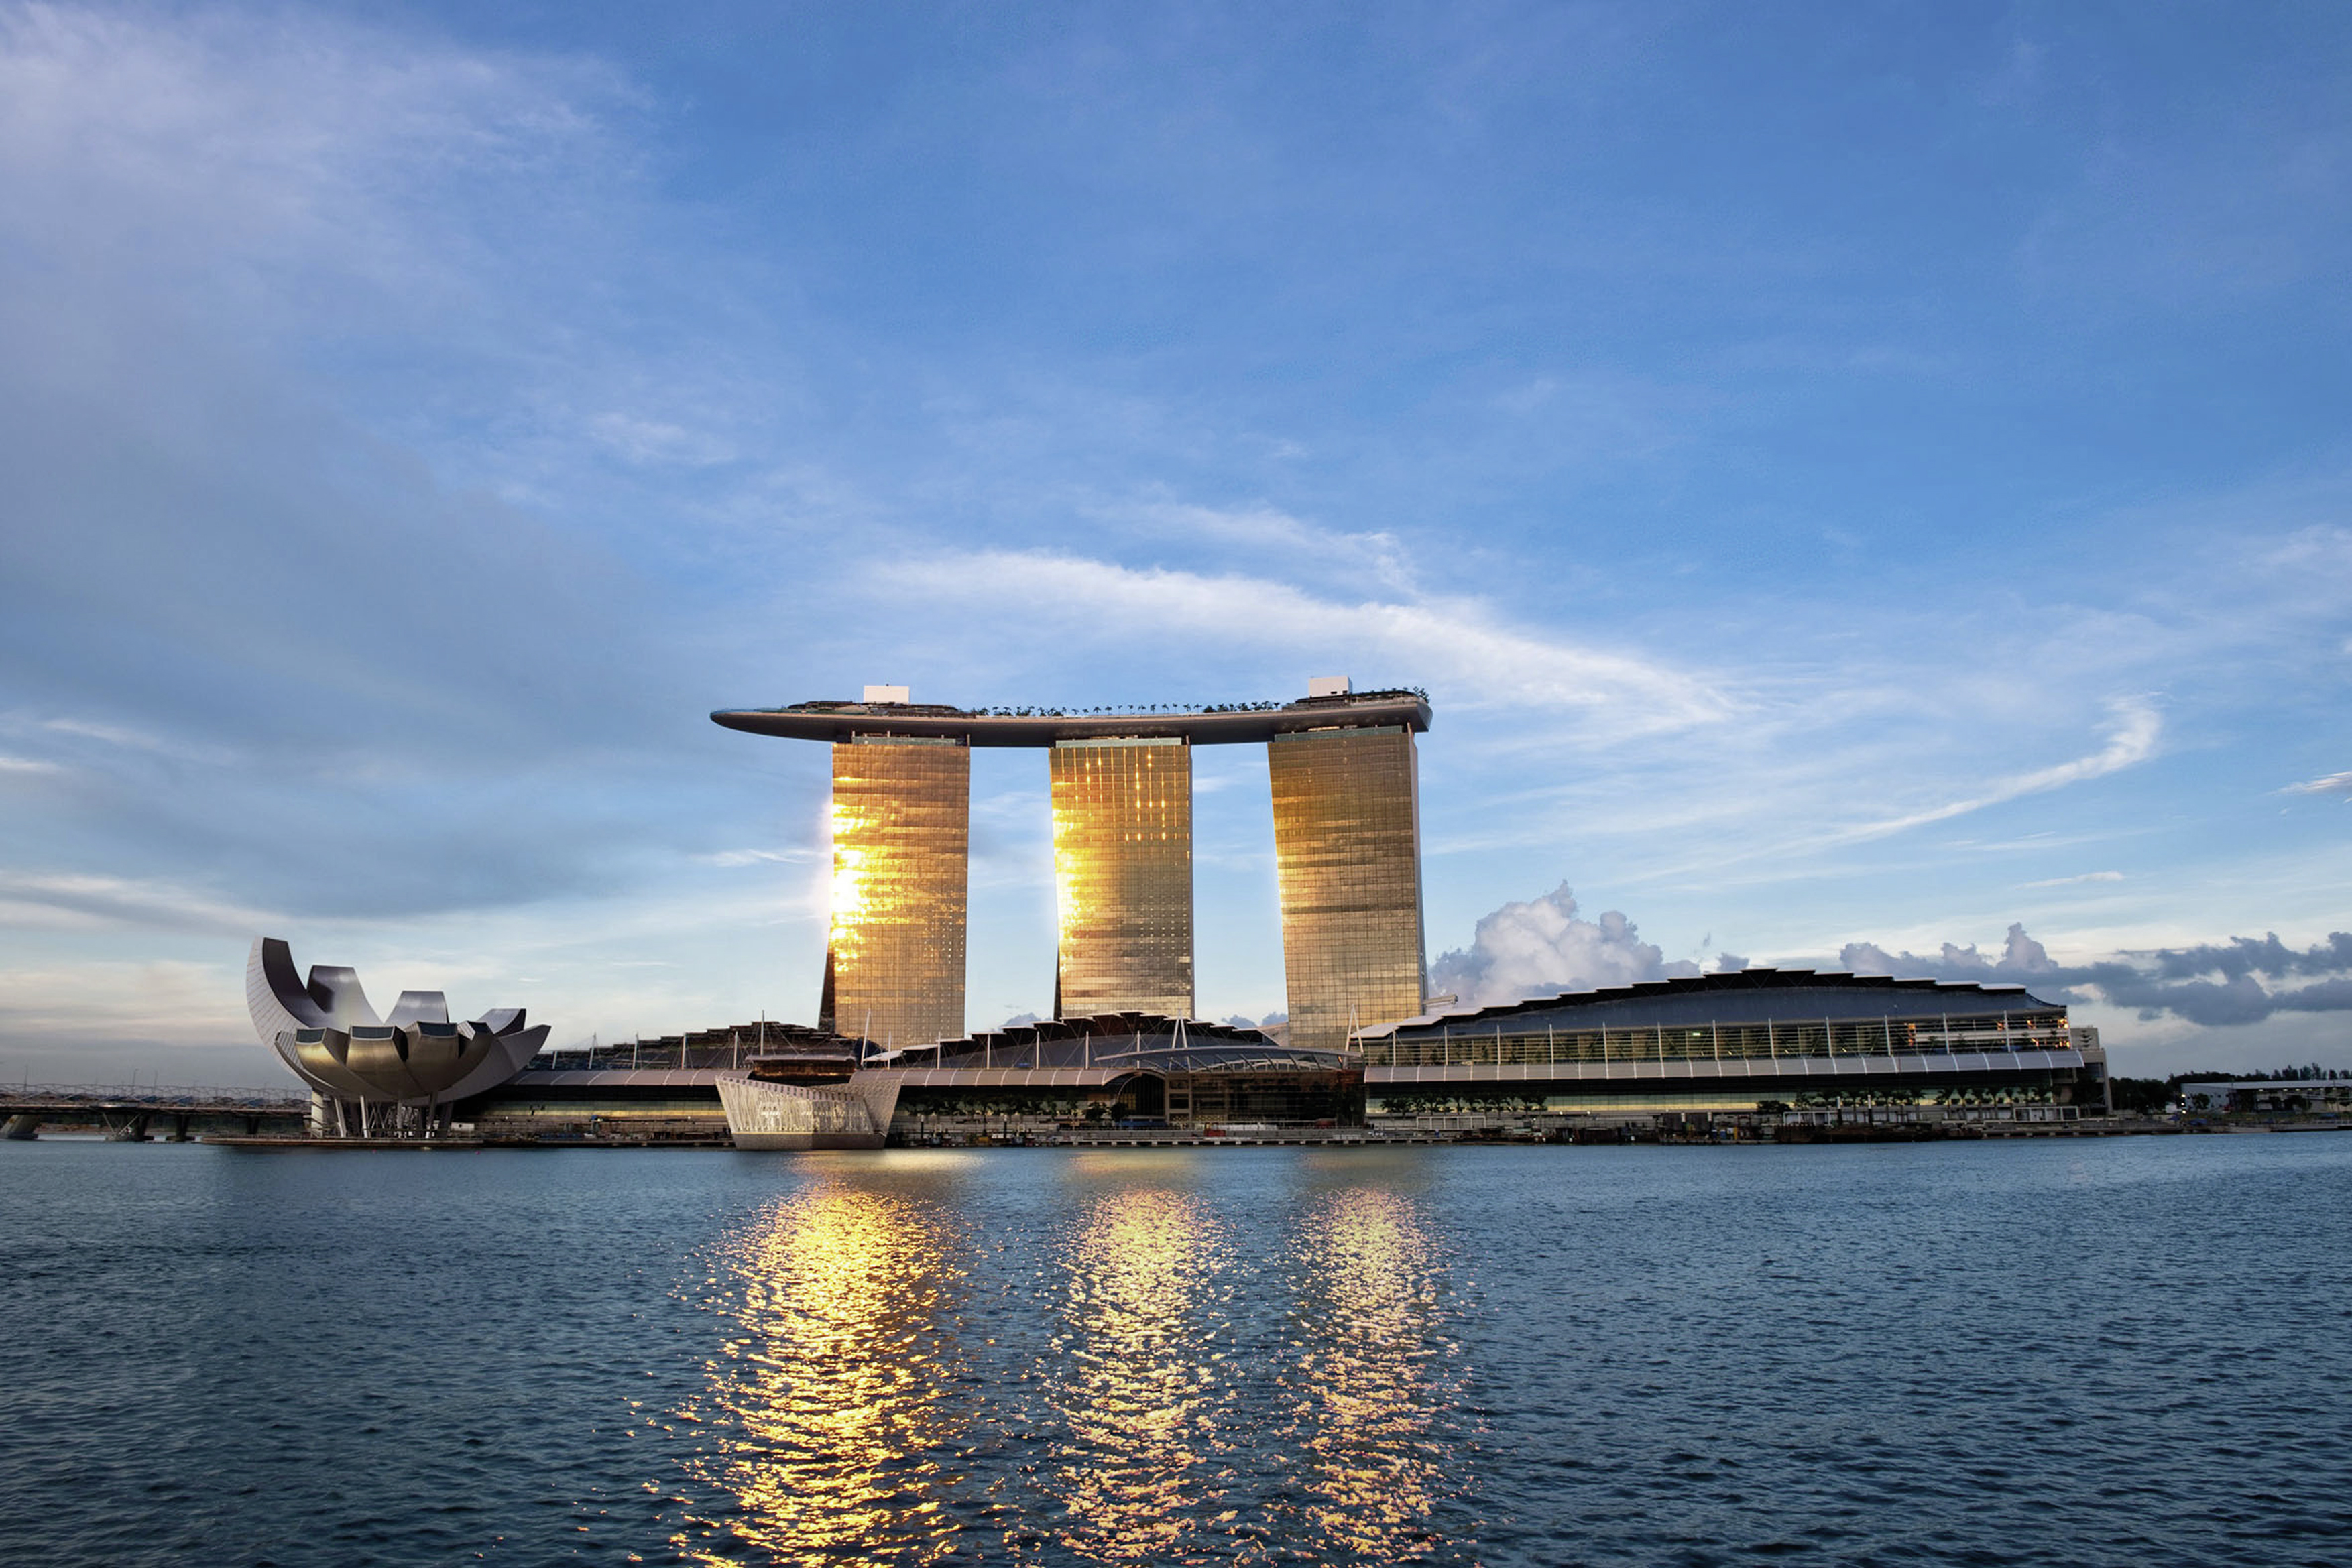 Luxurious bathroom design in the city state singapore for Marina bay sands architecture concept